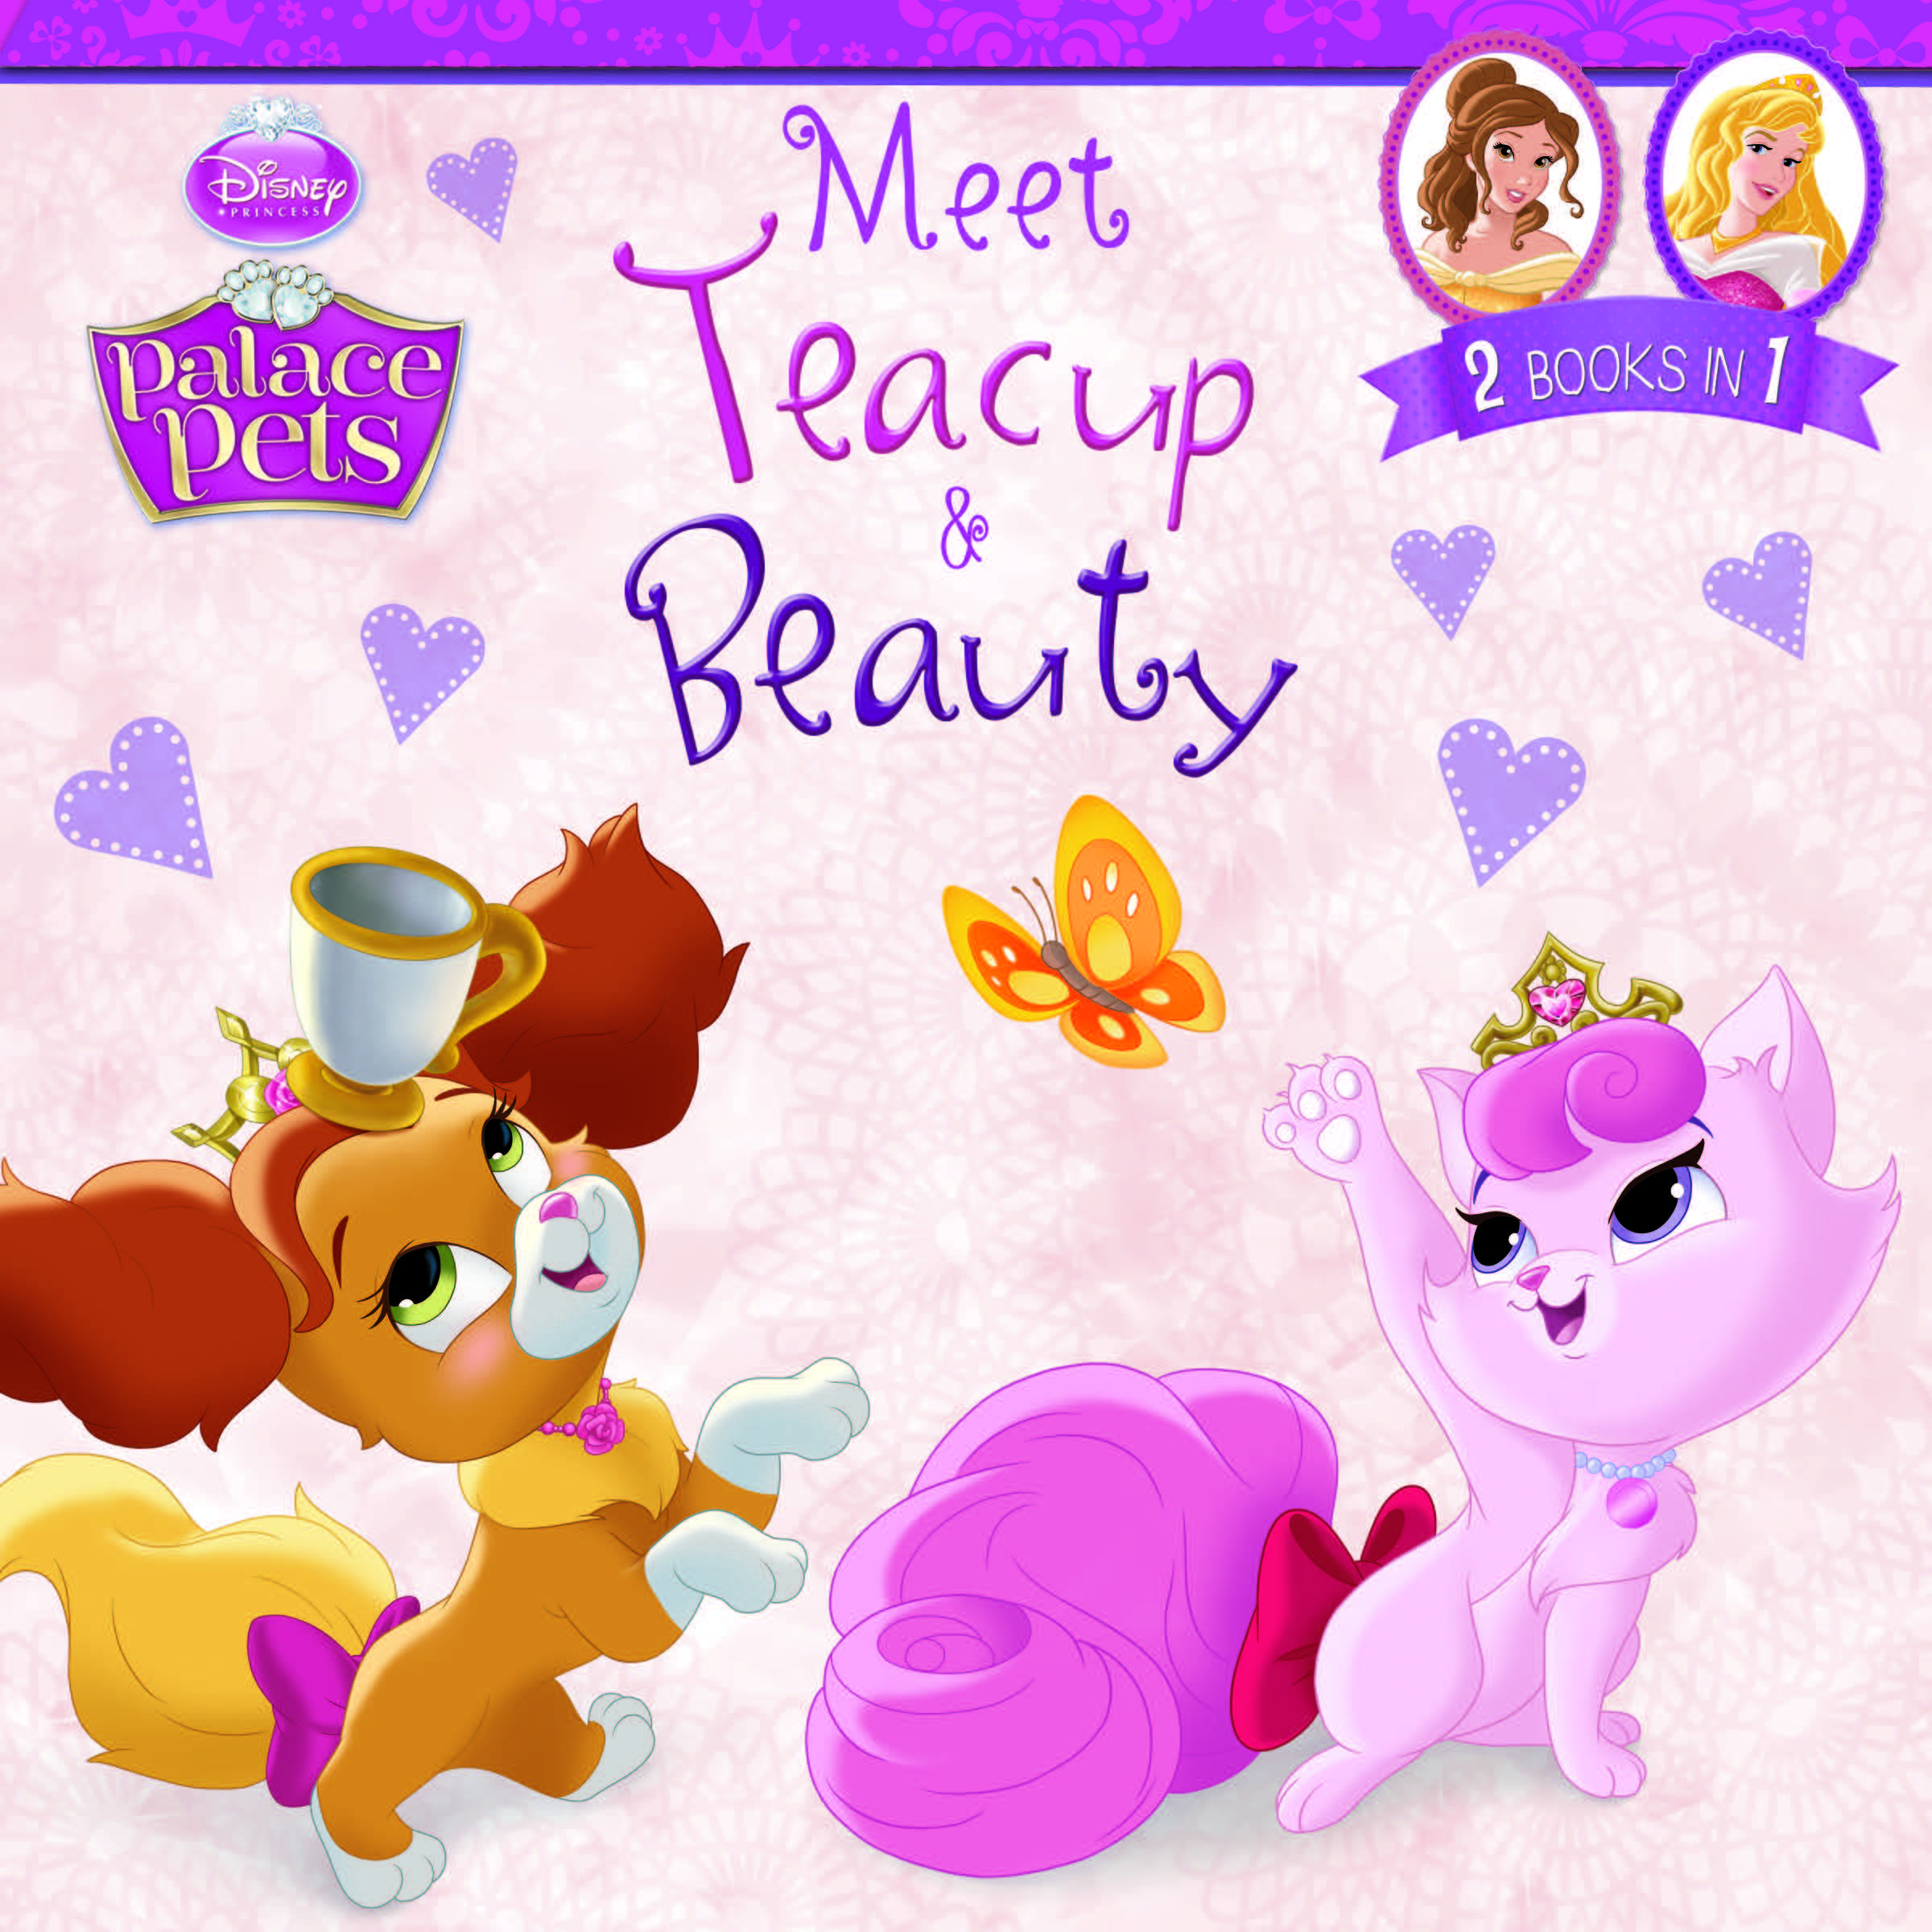 Palace Pets:  Meet Teacup and Beauty